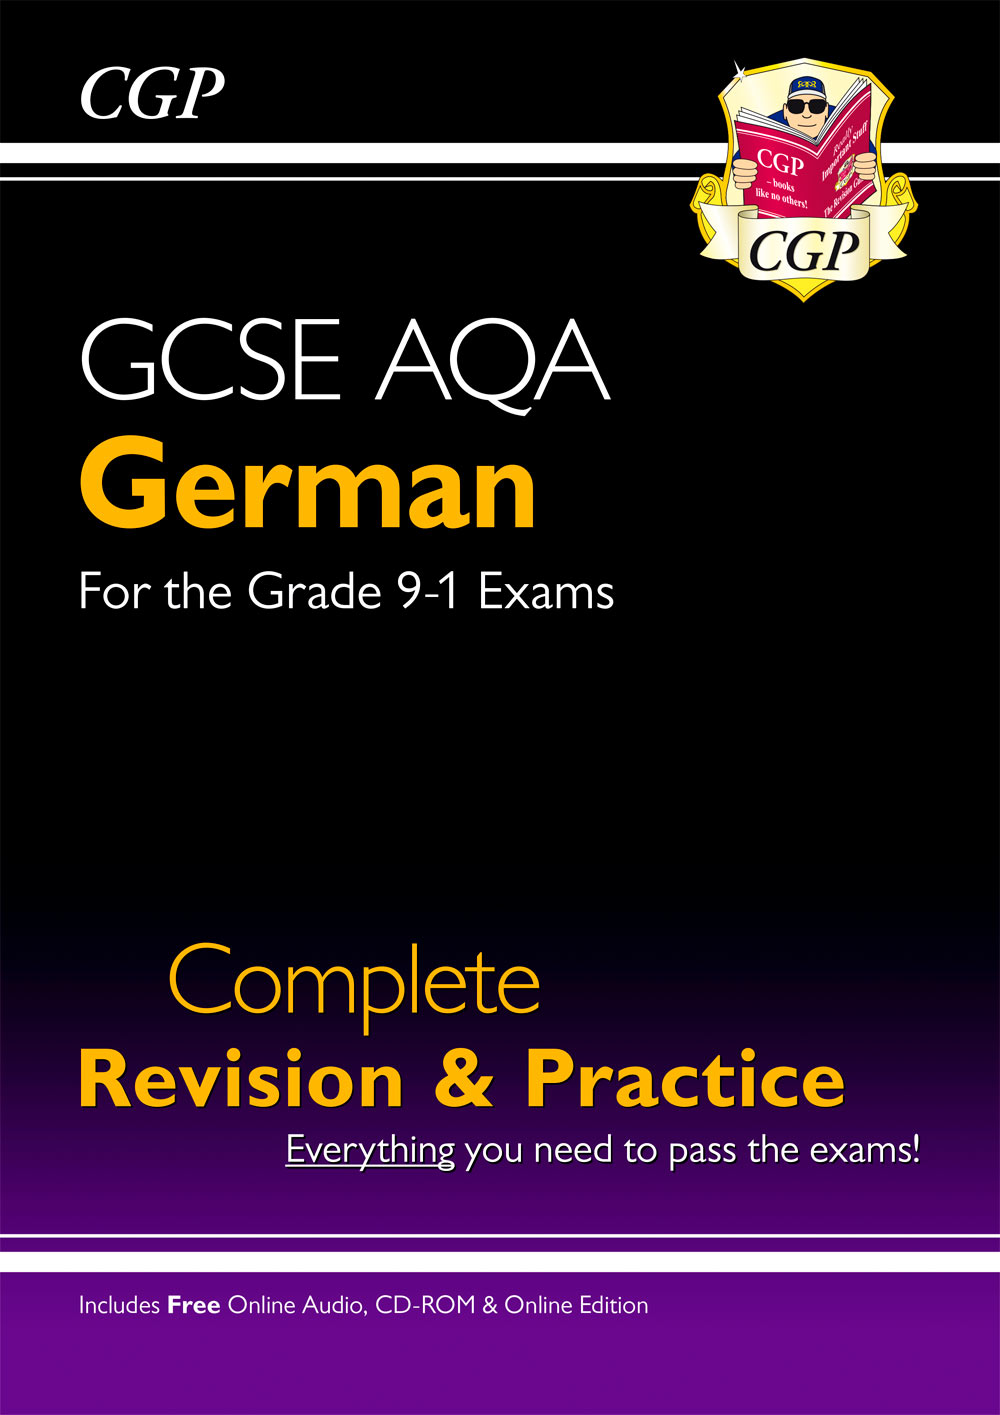 DAS41 - GCSE German AQA Complete Revision & Practice (with CD & Online Edition) - Grade 9-1 Course